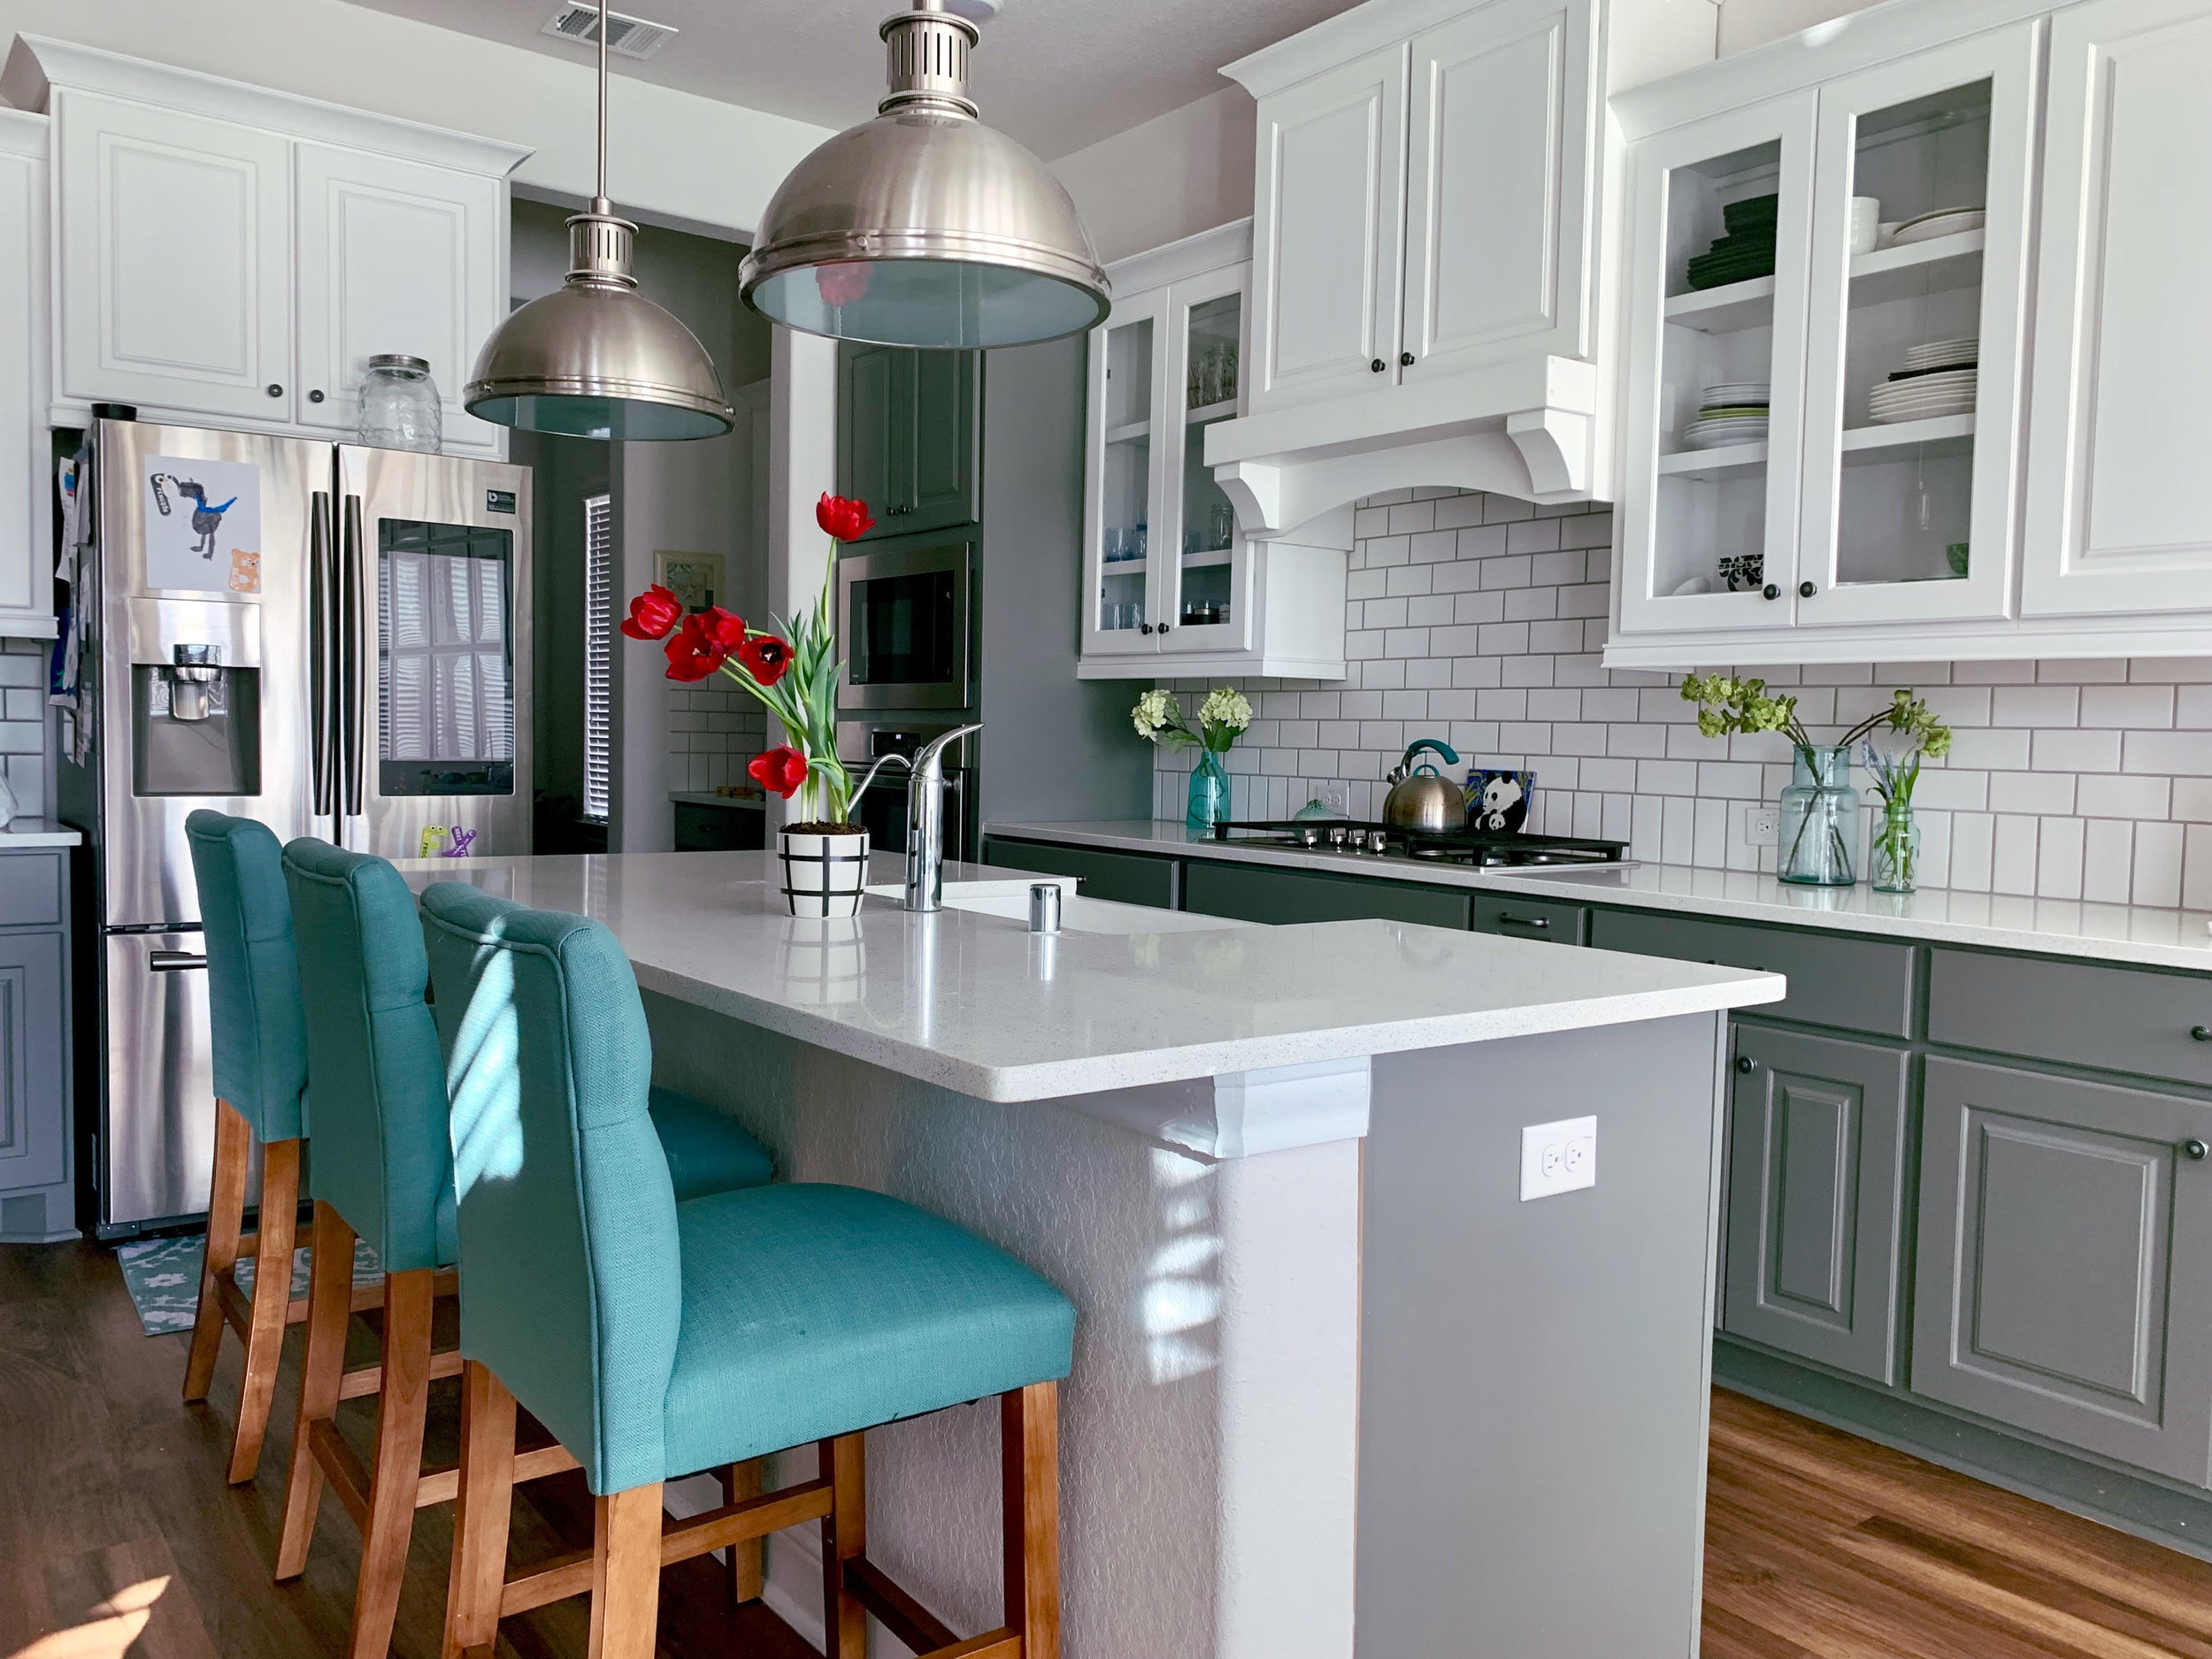 HOME - Budget friendly projects and creations done to make our house a home.